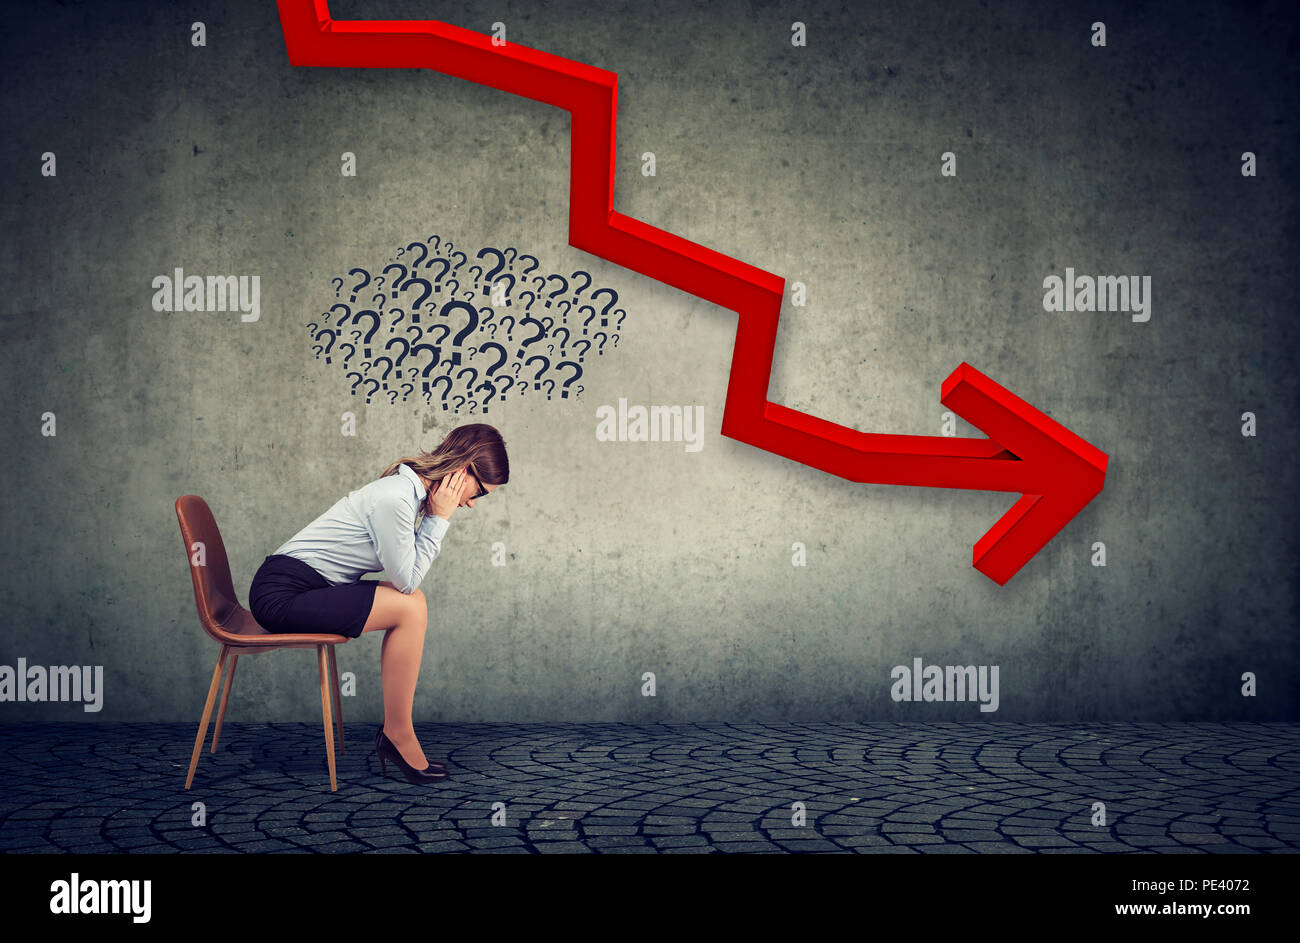 Depressed business woman looking down at the falling red arrow feeling confused has many questions. Fall and depreciation concept. - Stock Image